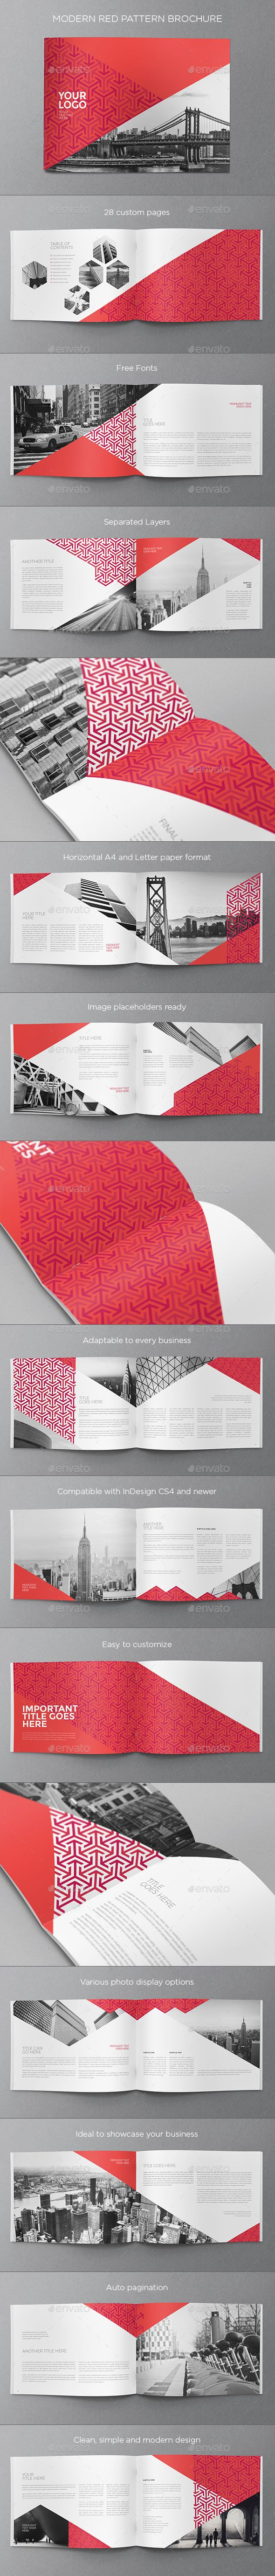 Modern Red Pattern Brochure Template InDesign INDD. Download here: http://graphicriver.net/item/modern-red-pattern-brochure/16132872?ref=ksioks